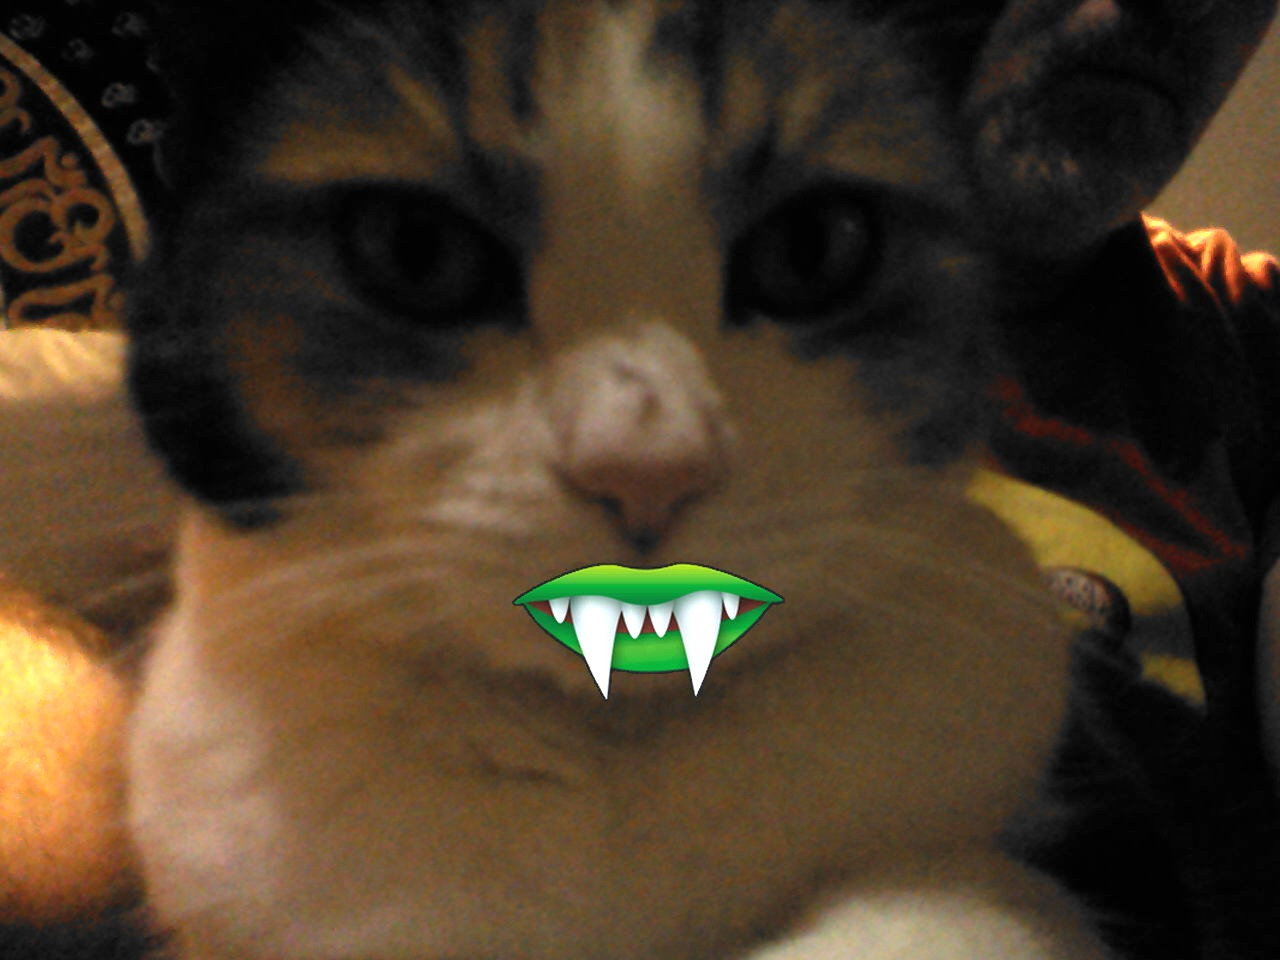 Zoe with vampire teeth -- too close and too dark but she looks more ee-ville that way